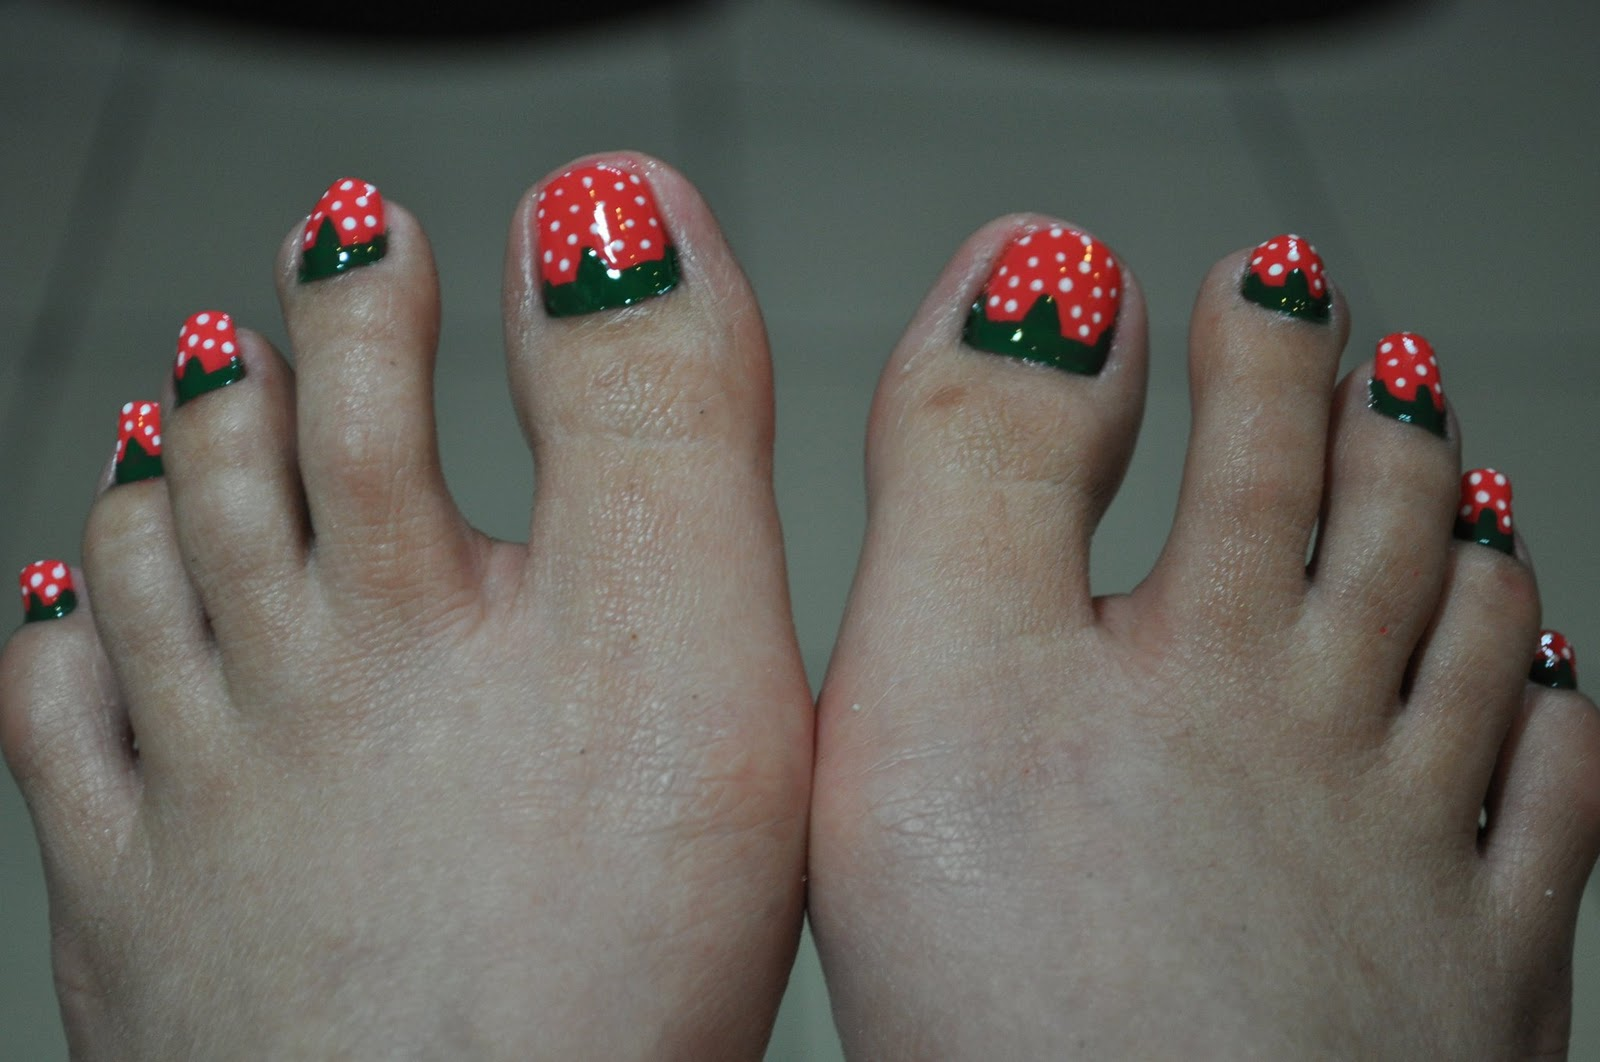 Nail Polish Designs Feet Hession Hairdressing